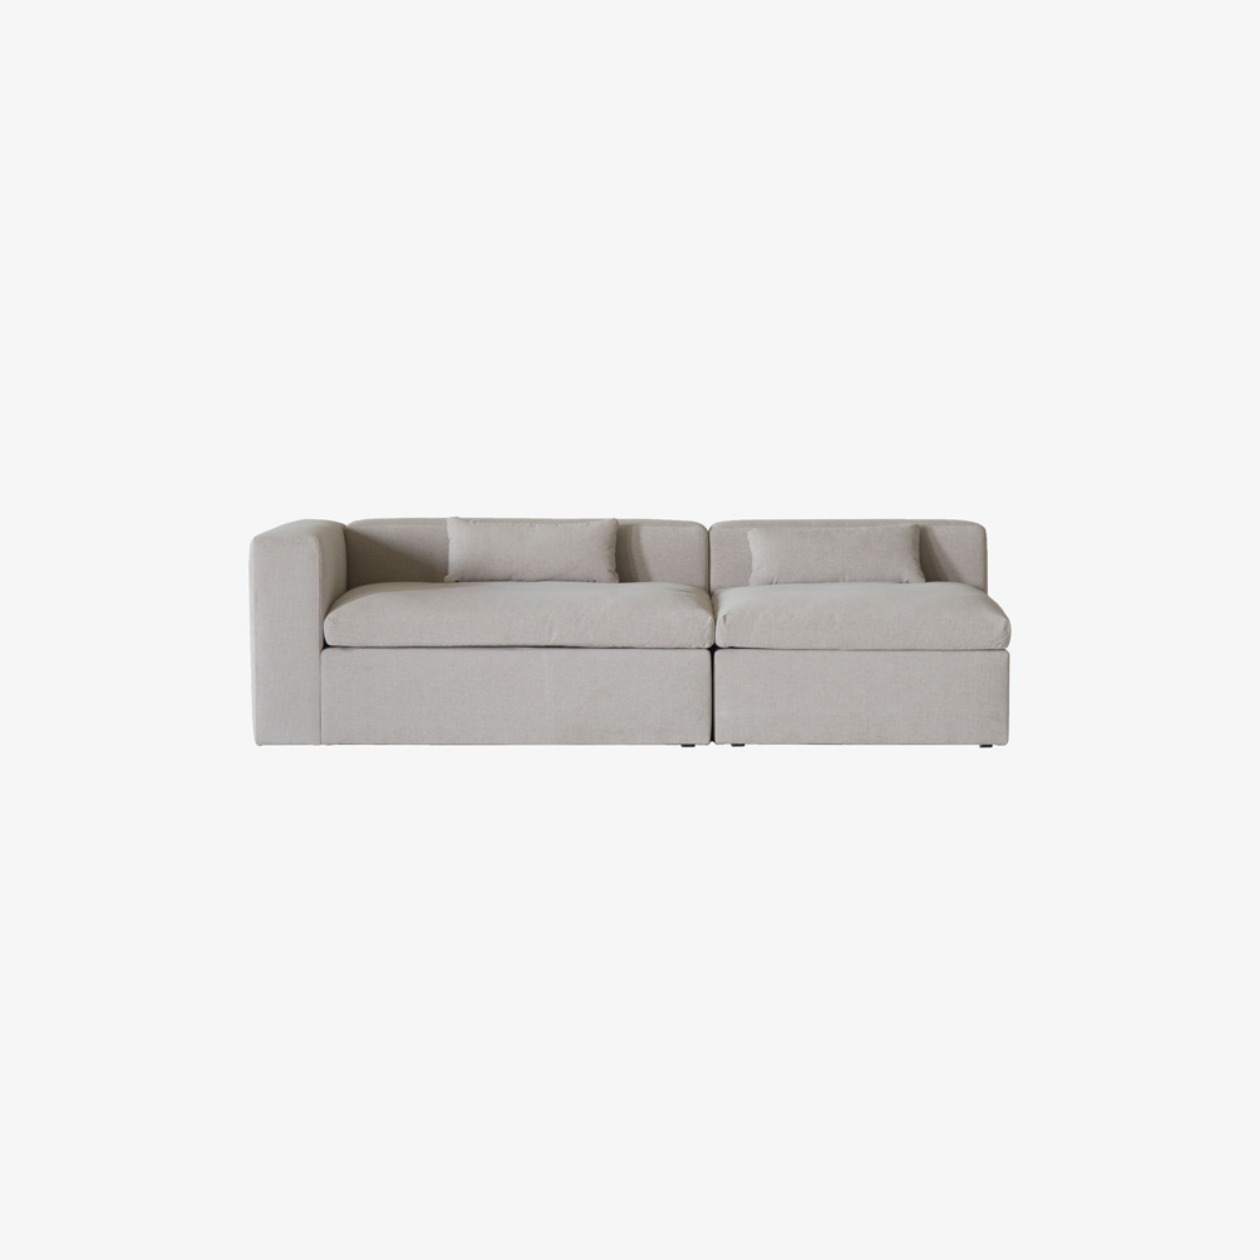 TIMELESS SOFT SOFA A+B